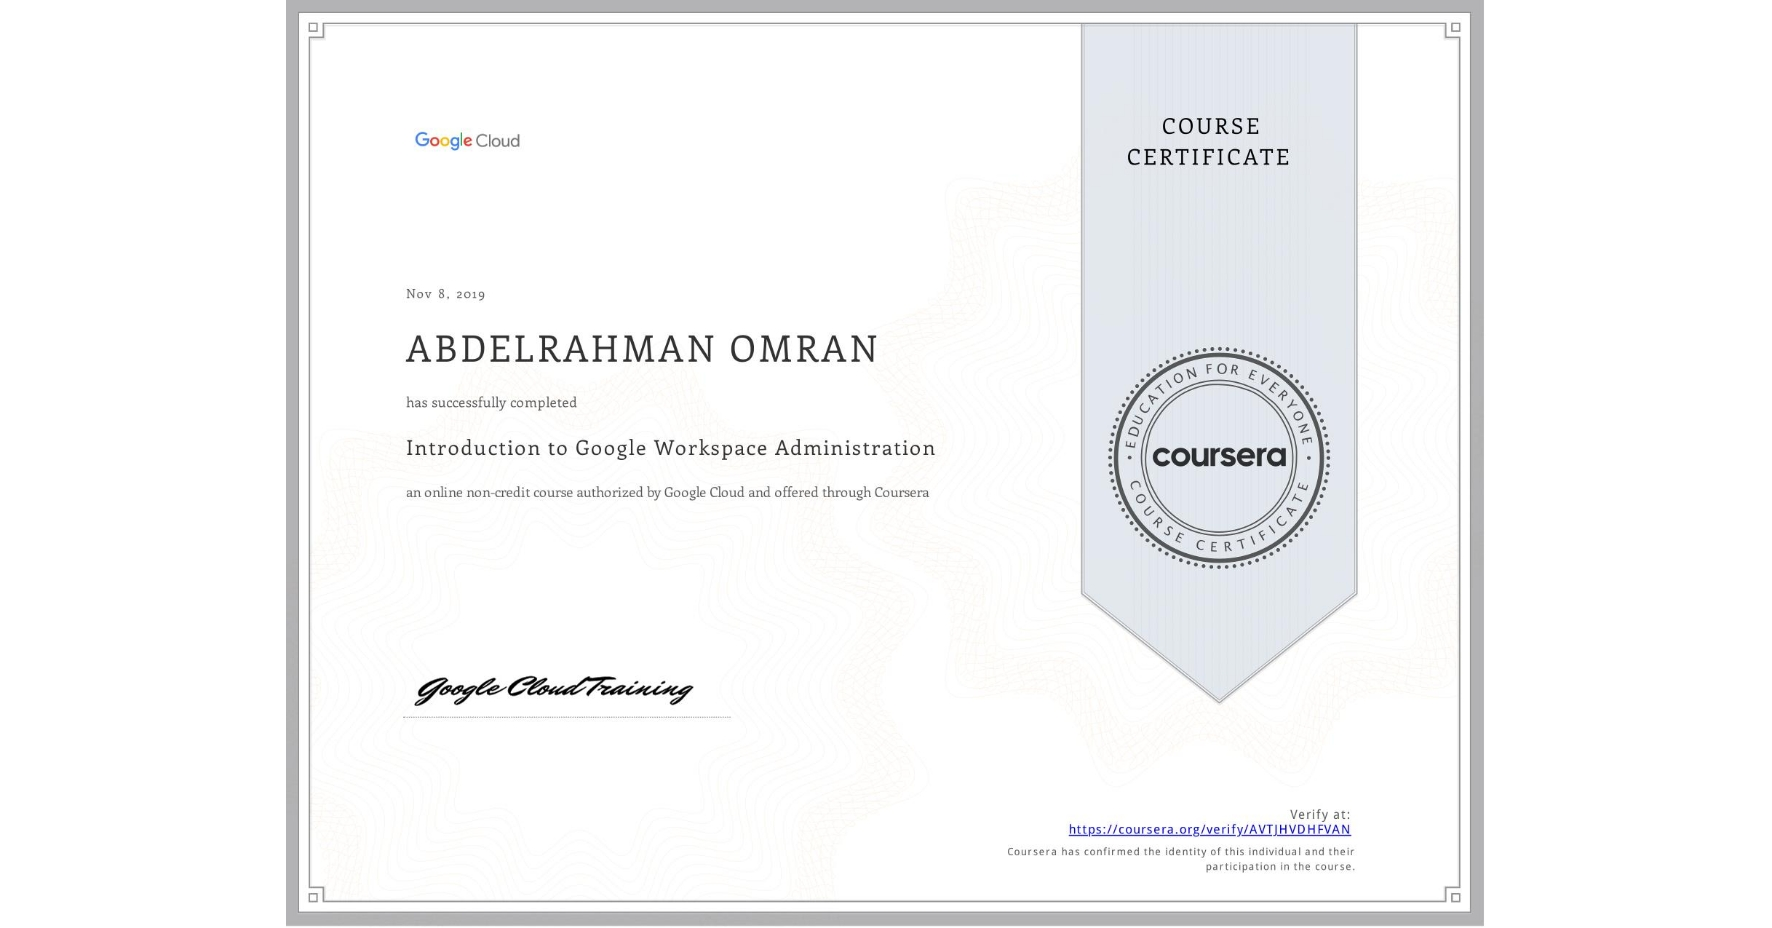 View certificate for ABDELRAHMAN OMRAN, Introduction to Google Workspace, an online non-credit course authorized by Google Cloud and offered through Coursera